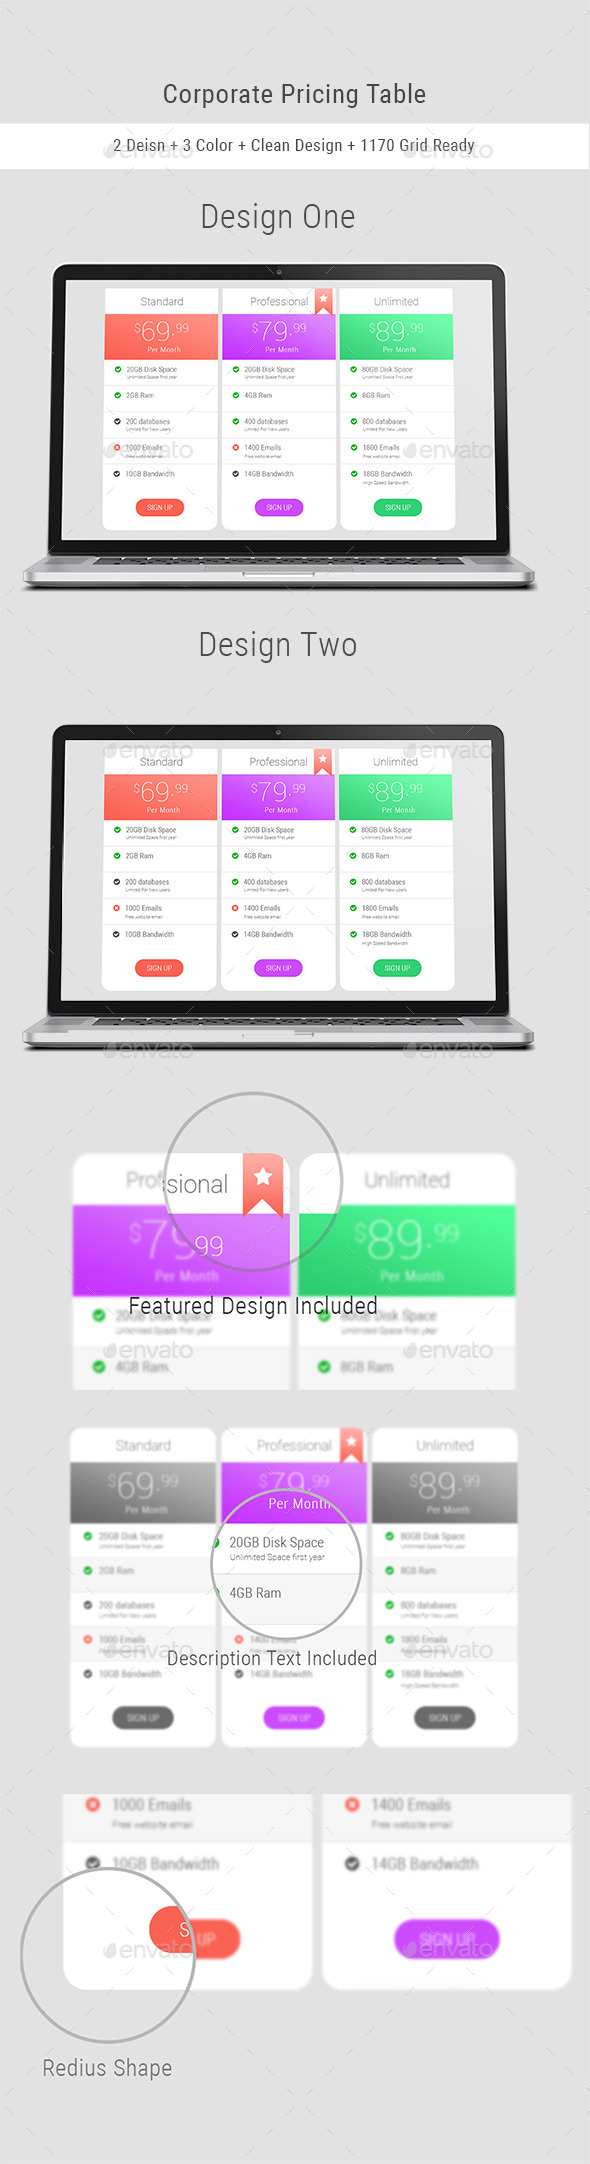 GraphicRiver Corporate Pricing Table 11331471